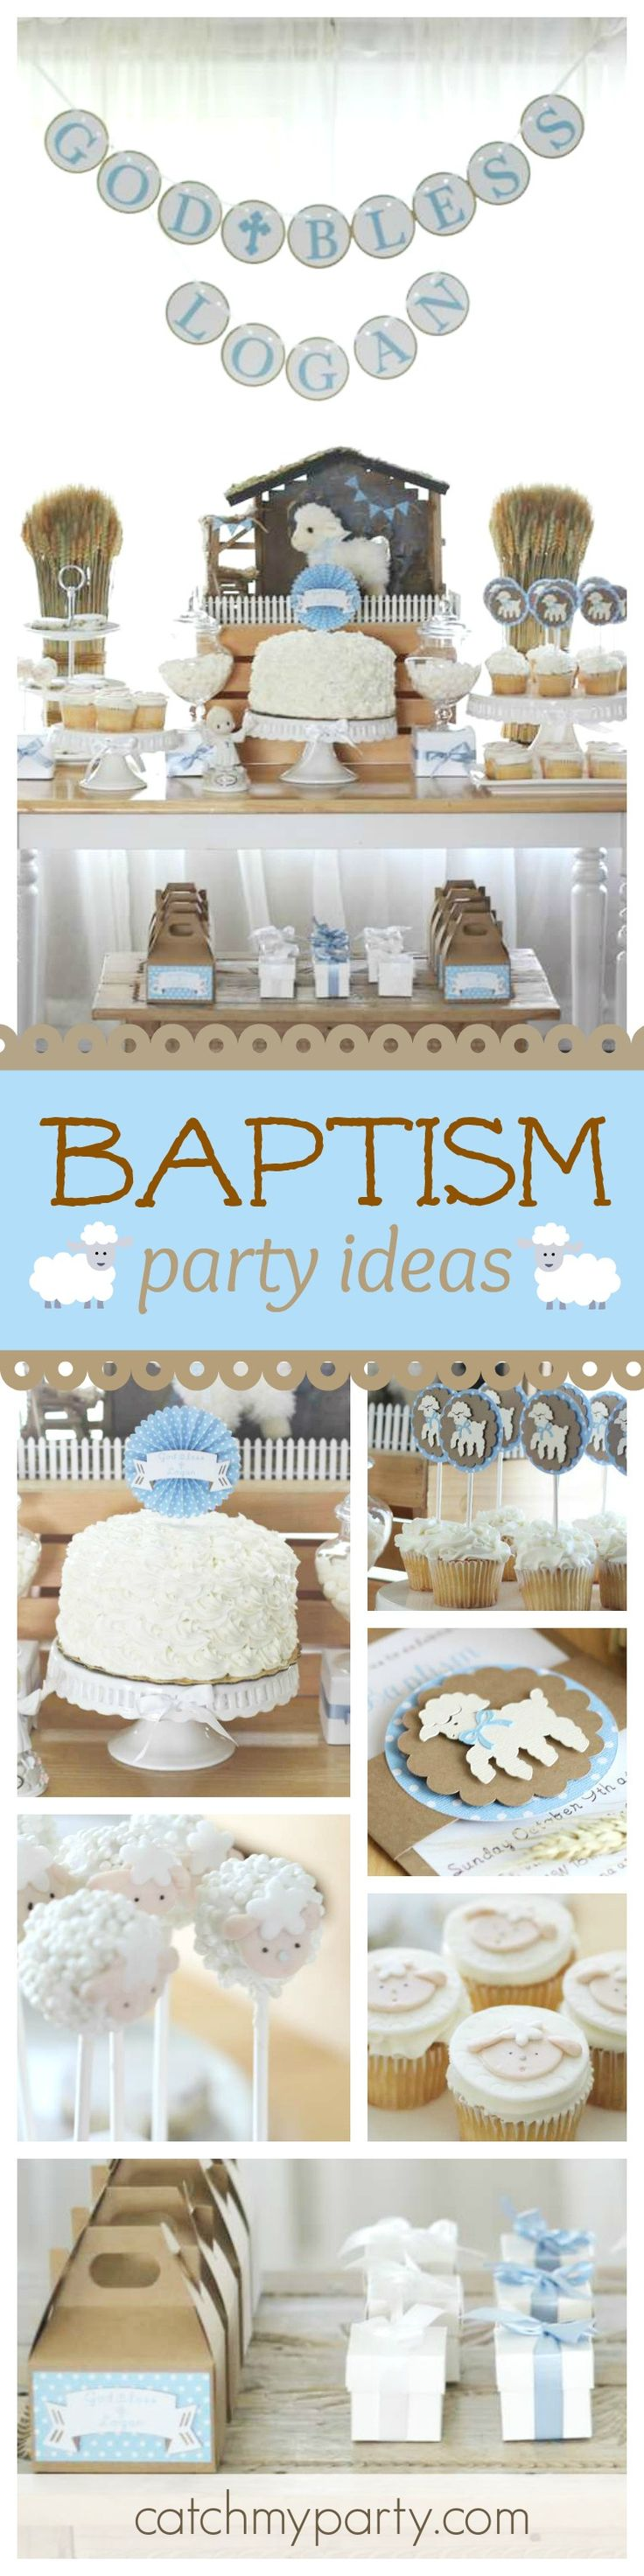 You don't want to miss this gorgeous little lamb baptism party! The lamb cupcakes and cake pops are adorable!! See more party ideas and share yours at CatchMyParty.com